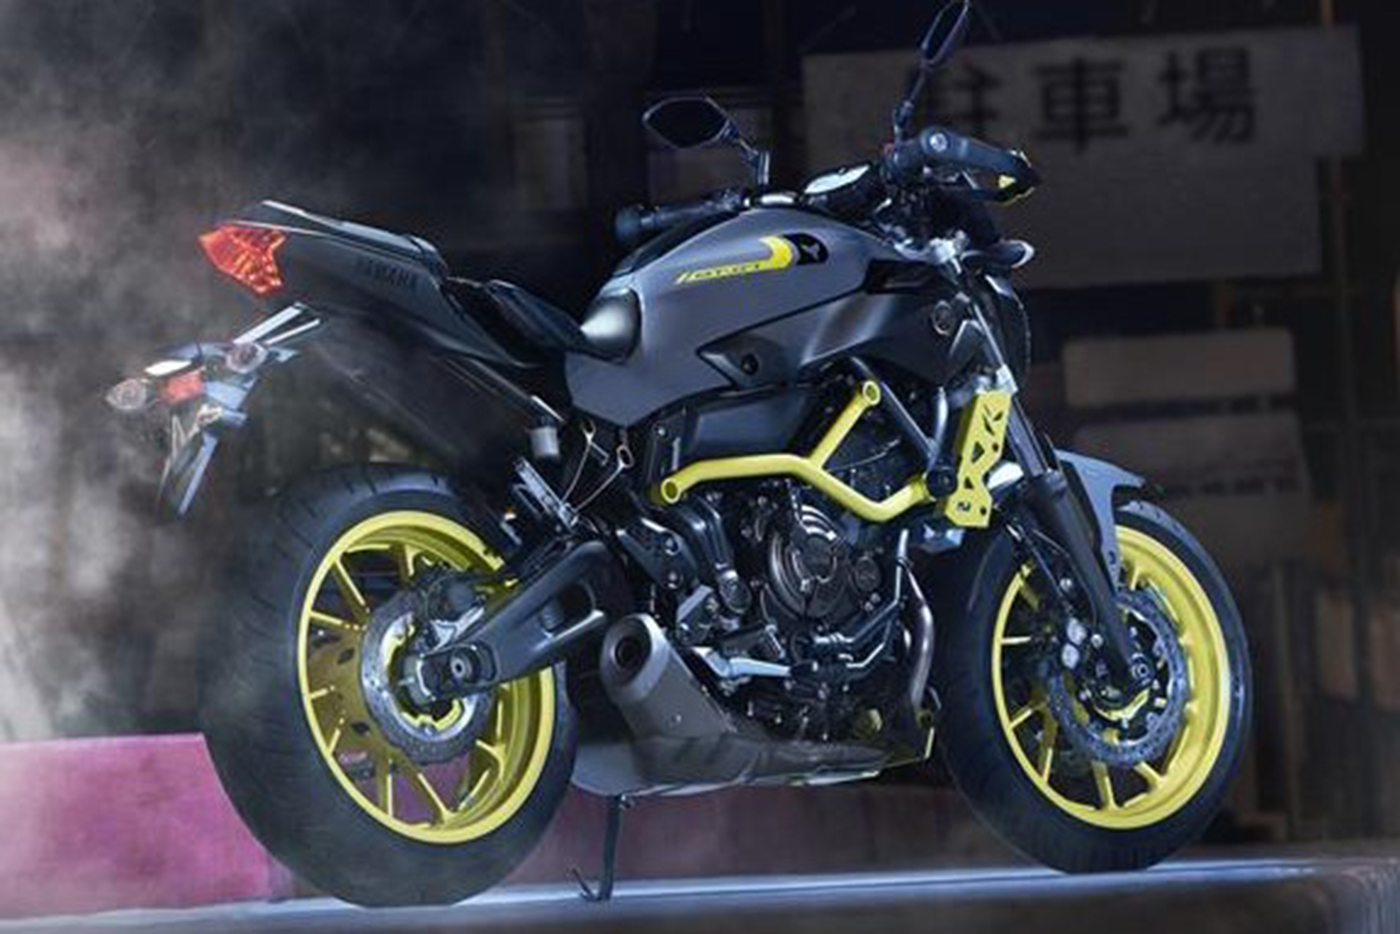 Yamaha mt 07 2017 ch nh th c tr nh l ng gi t usd for Yamaha mt 200